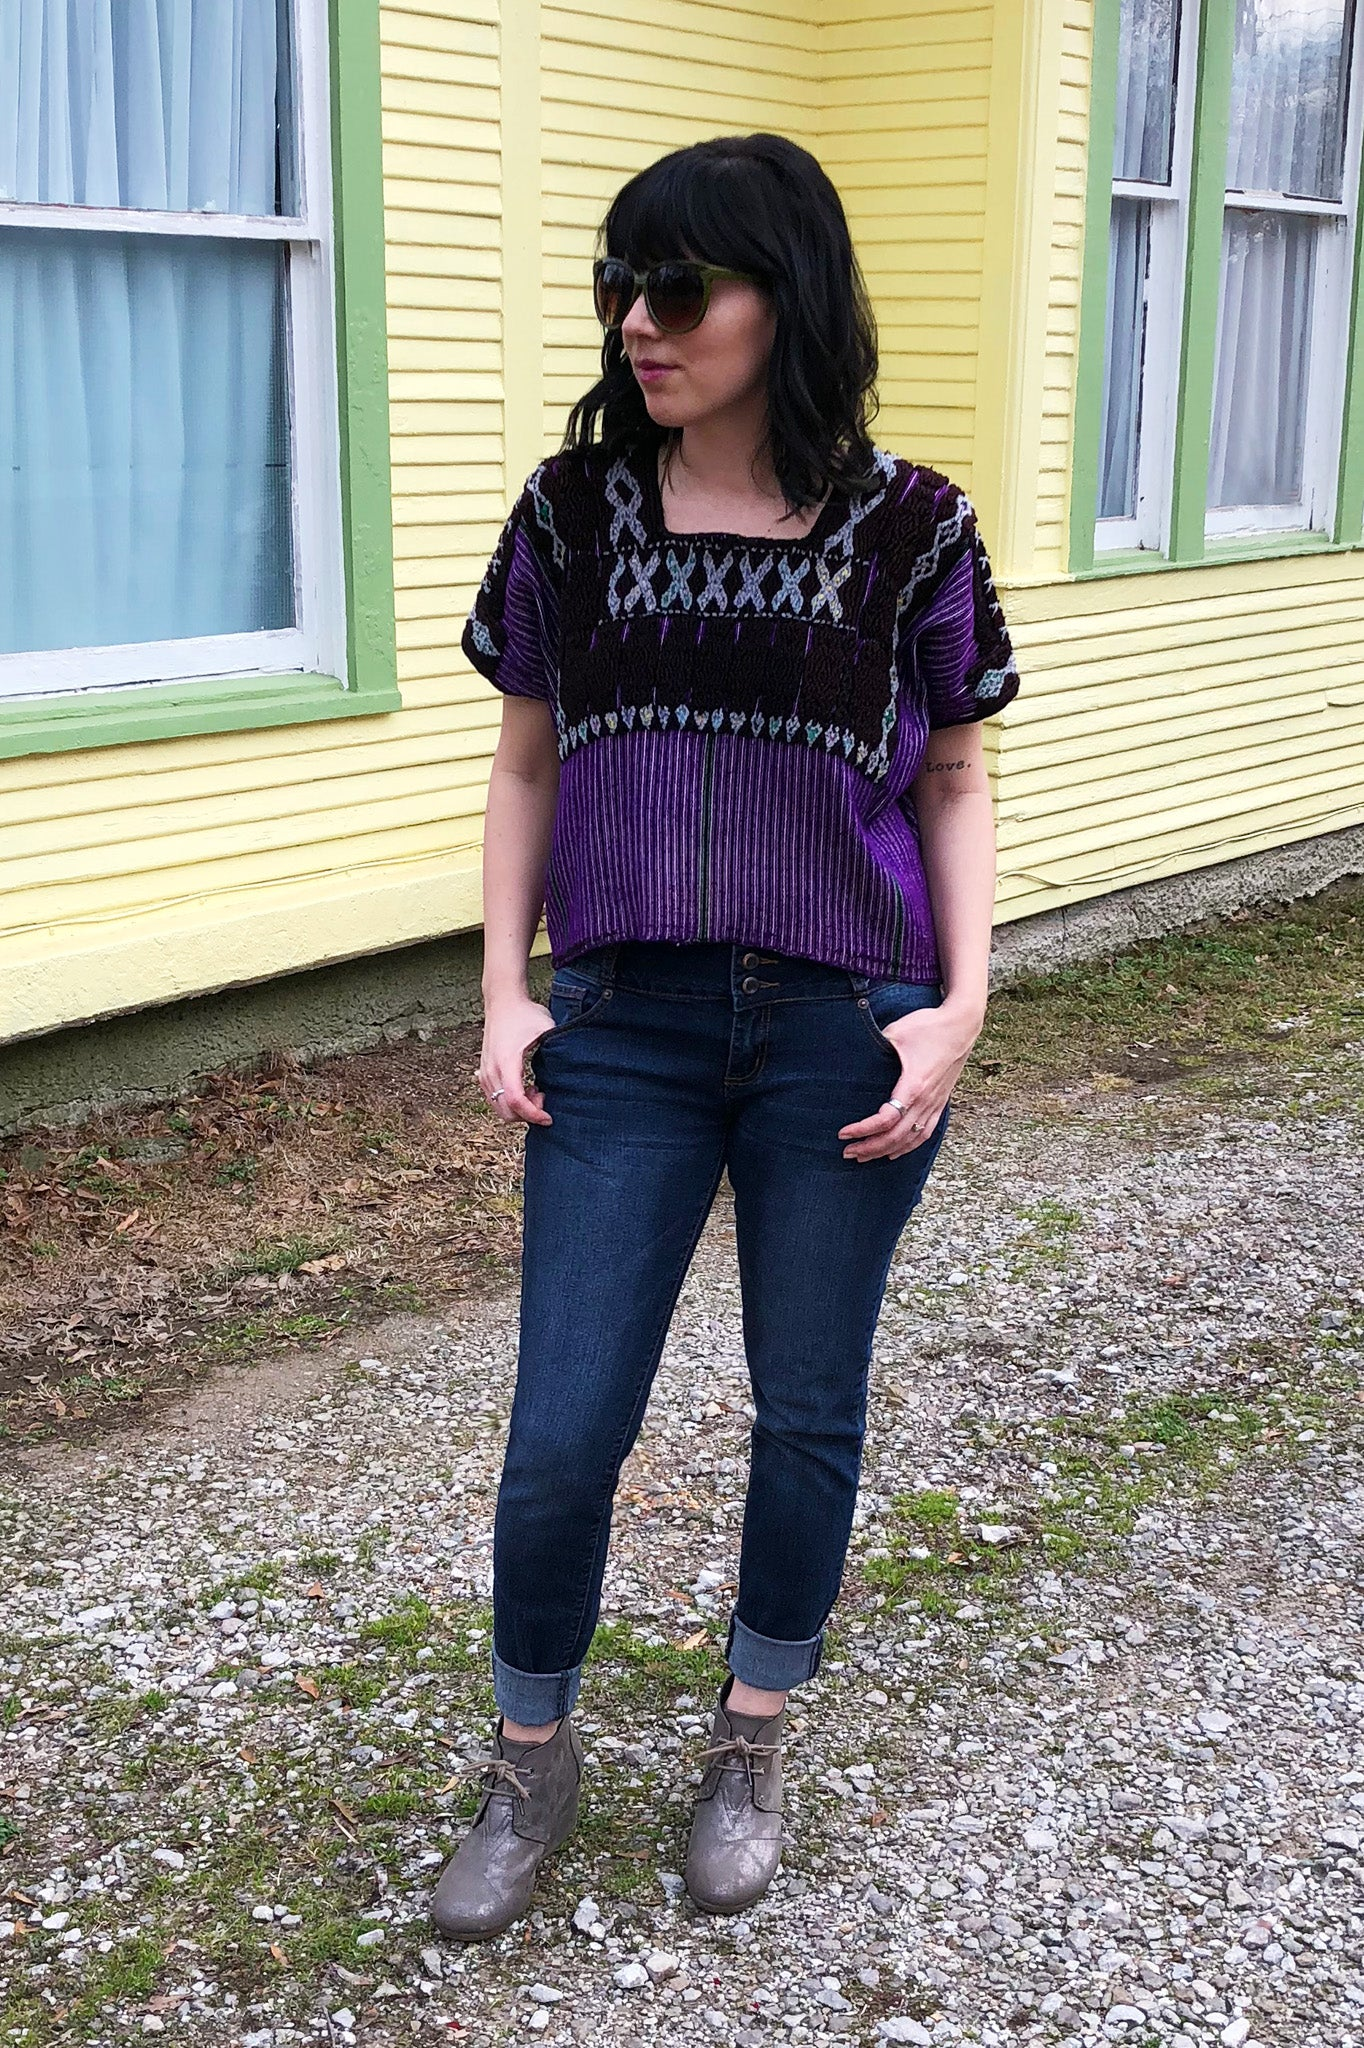 ShopMucho styles women's huipil jumper and top handmade in Southern Mexico by Chiapas women